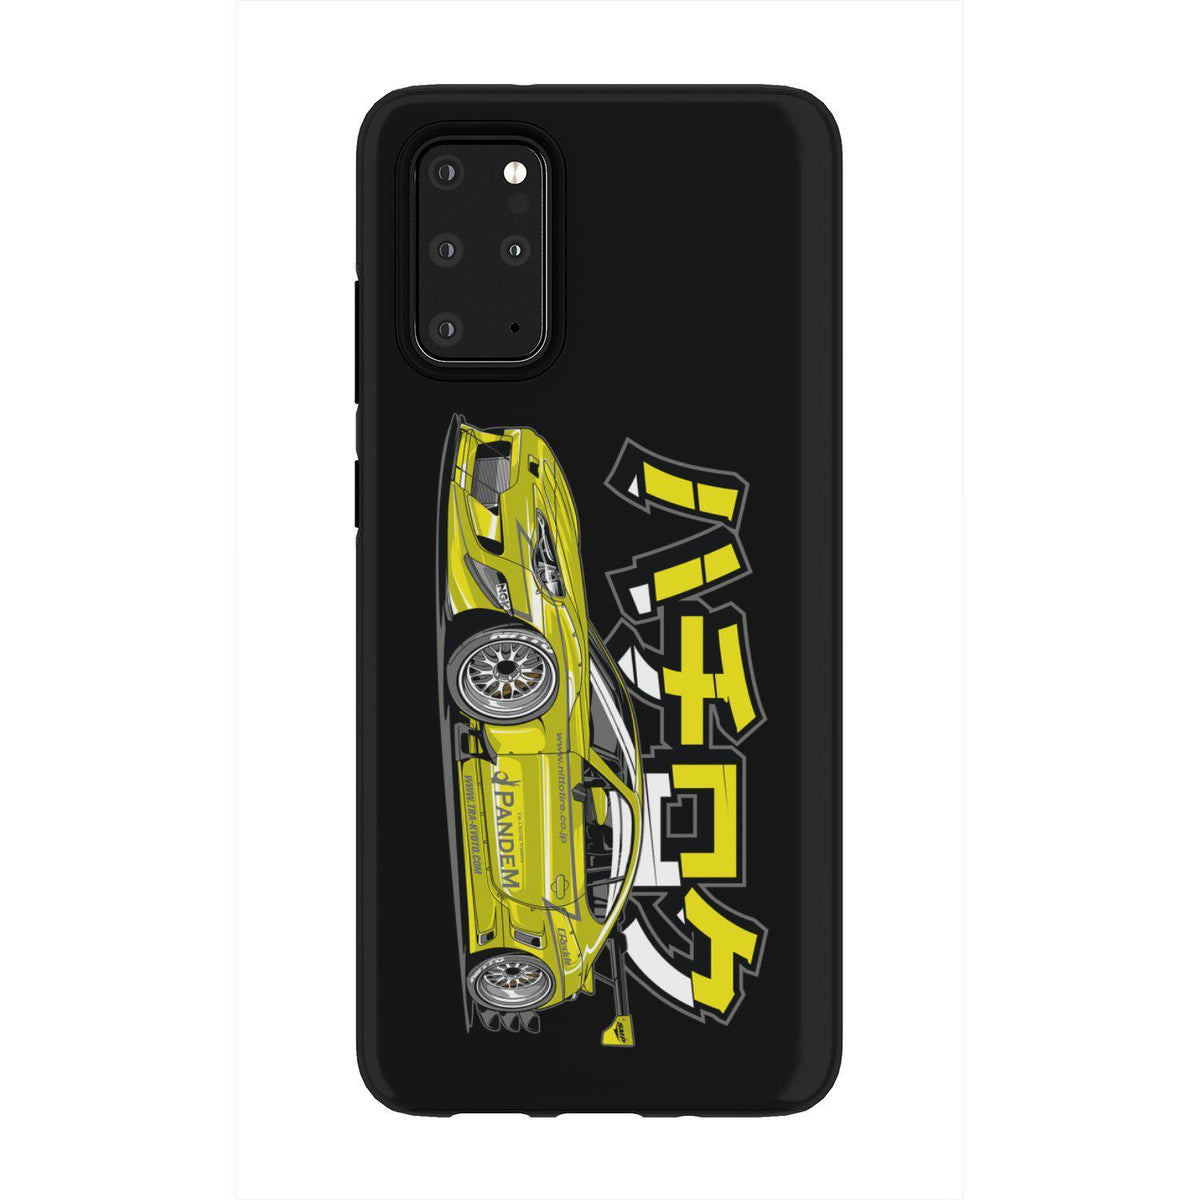 Toyota GT86 Pandem - Tough Case - for Samsung Galaxy S Models - TunerLifestyle